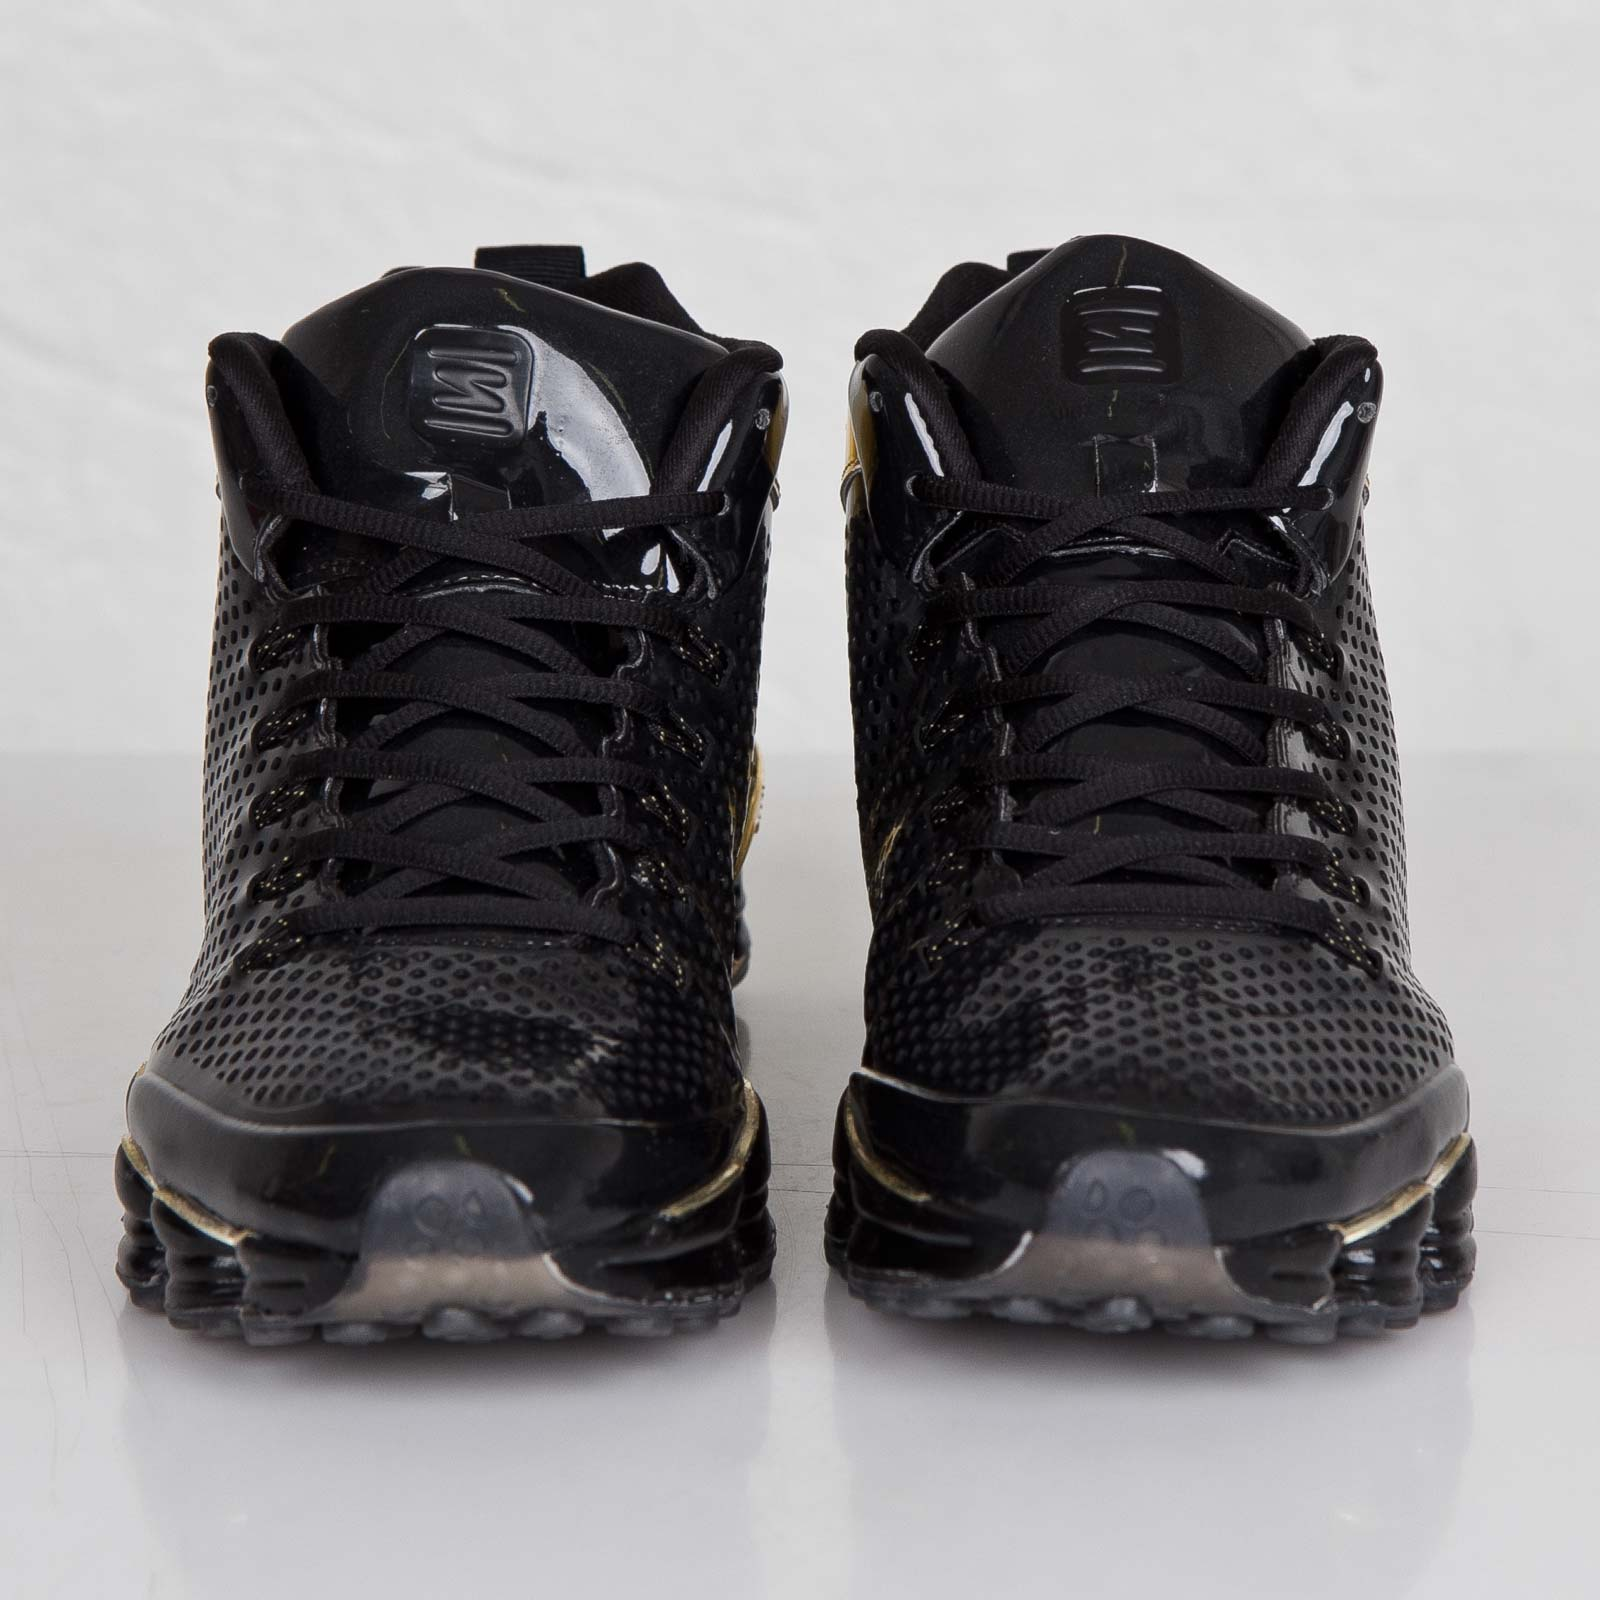 newest collection ddc35 cbb6f Nike Shox TLX Mid SP - 677737-002 - Sneakersnstuff ...